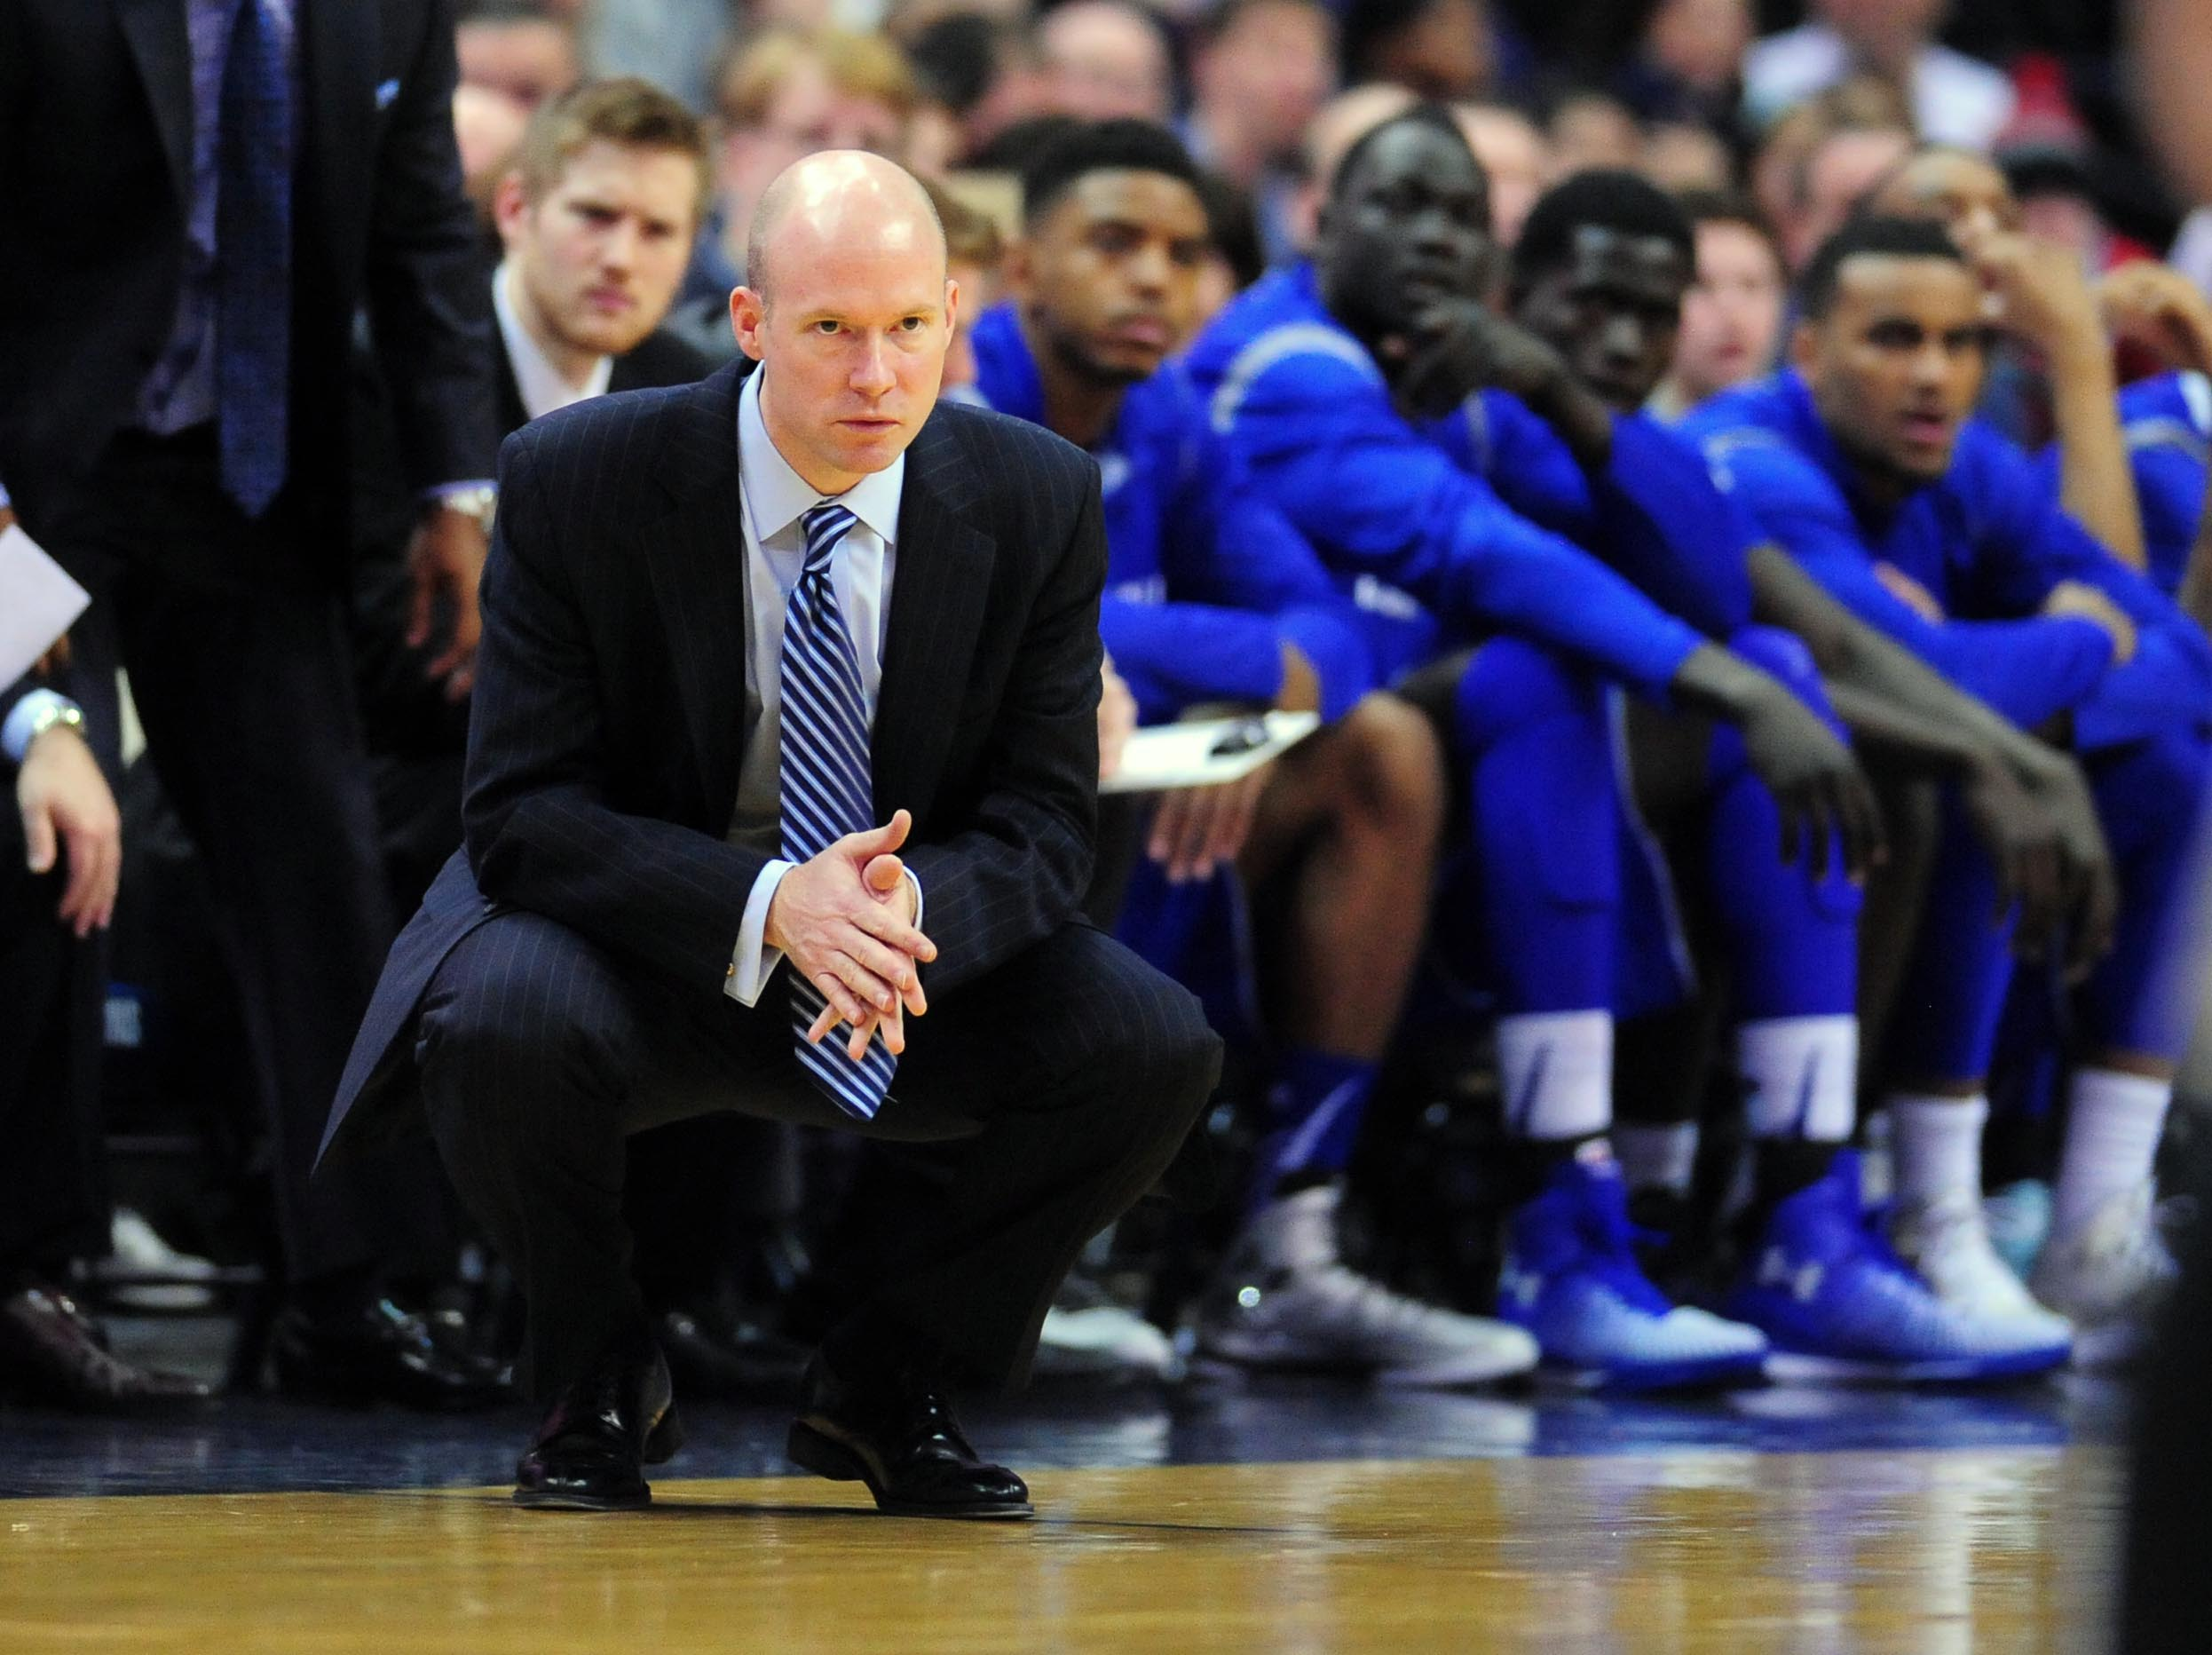 Seton Hall would be in decent shape if they beat Marquette on Wednesday, but may need help.